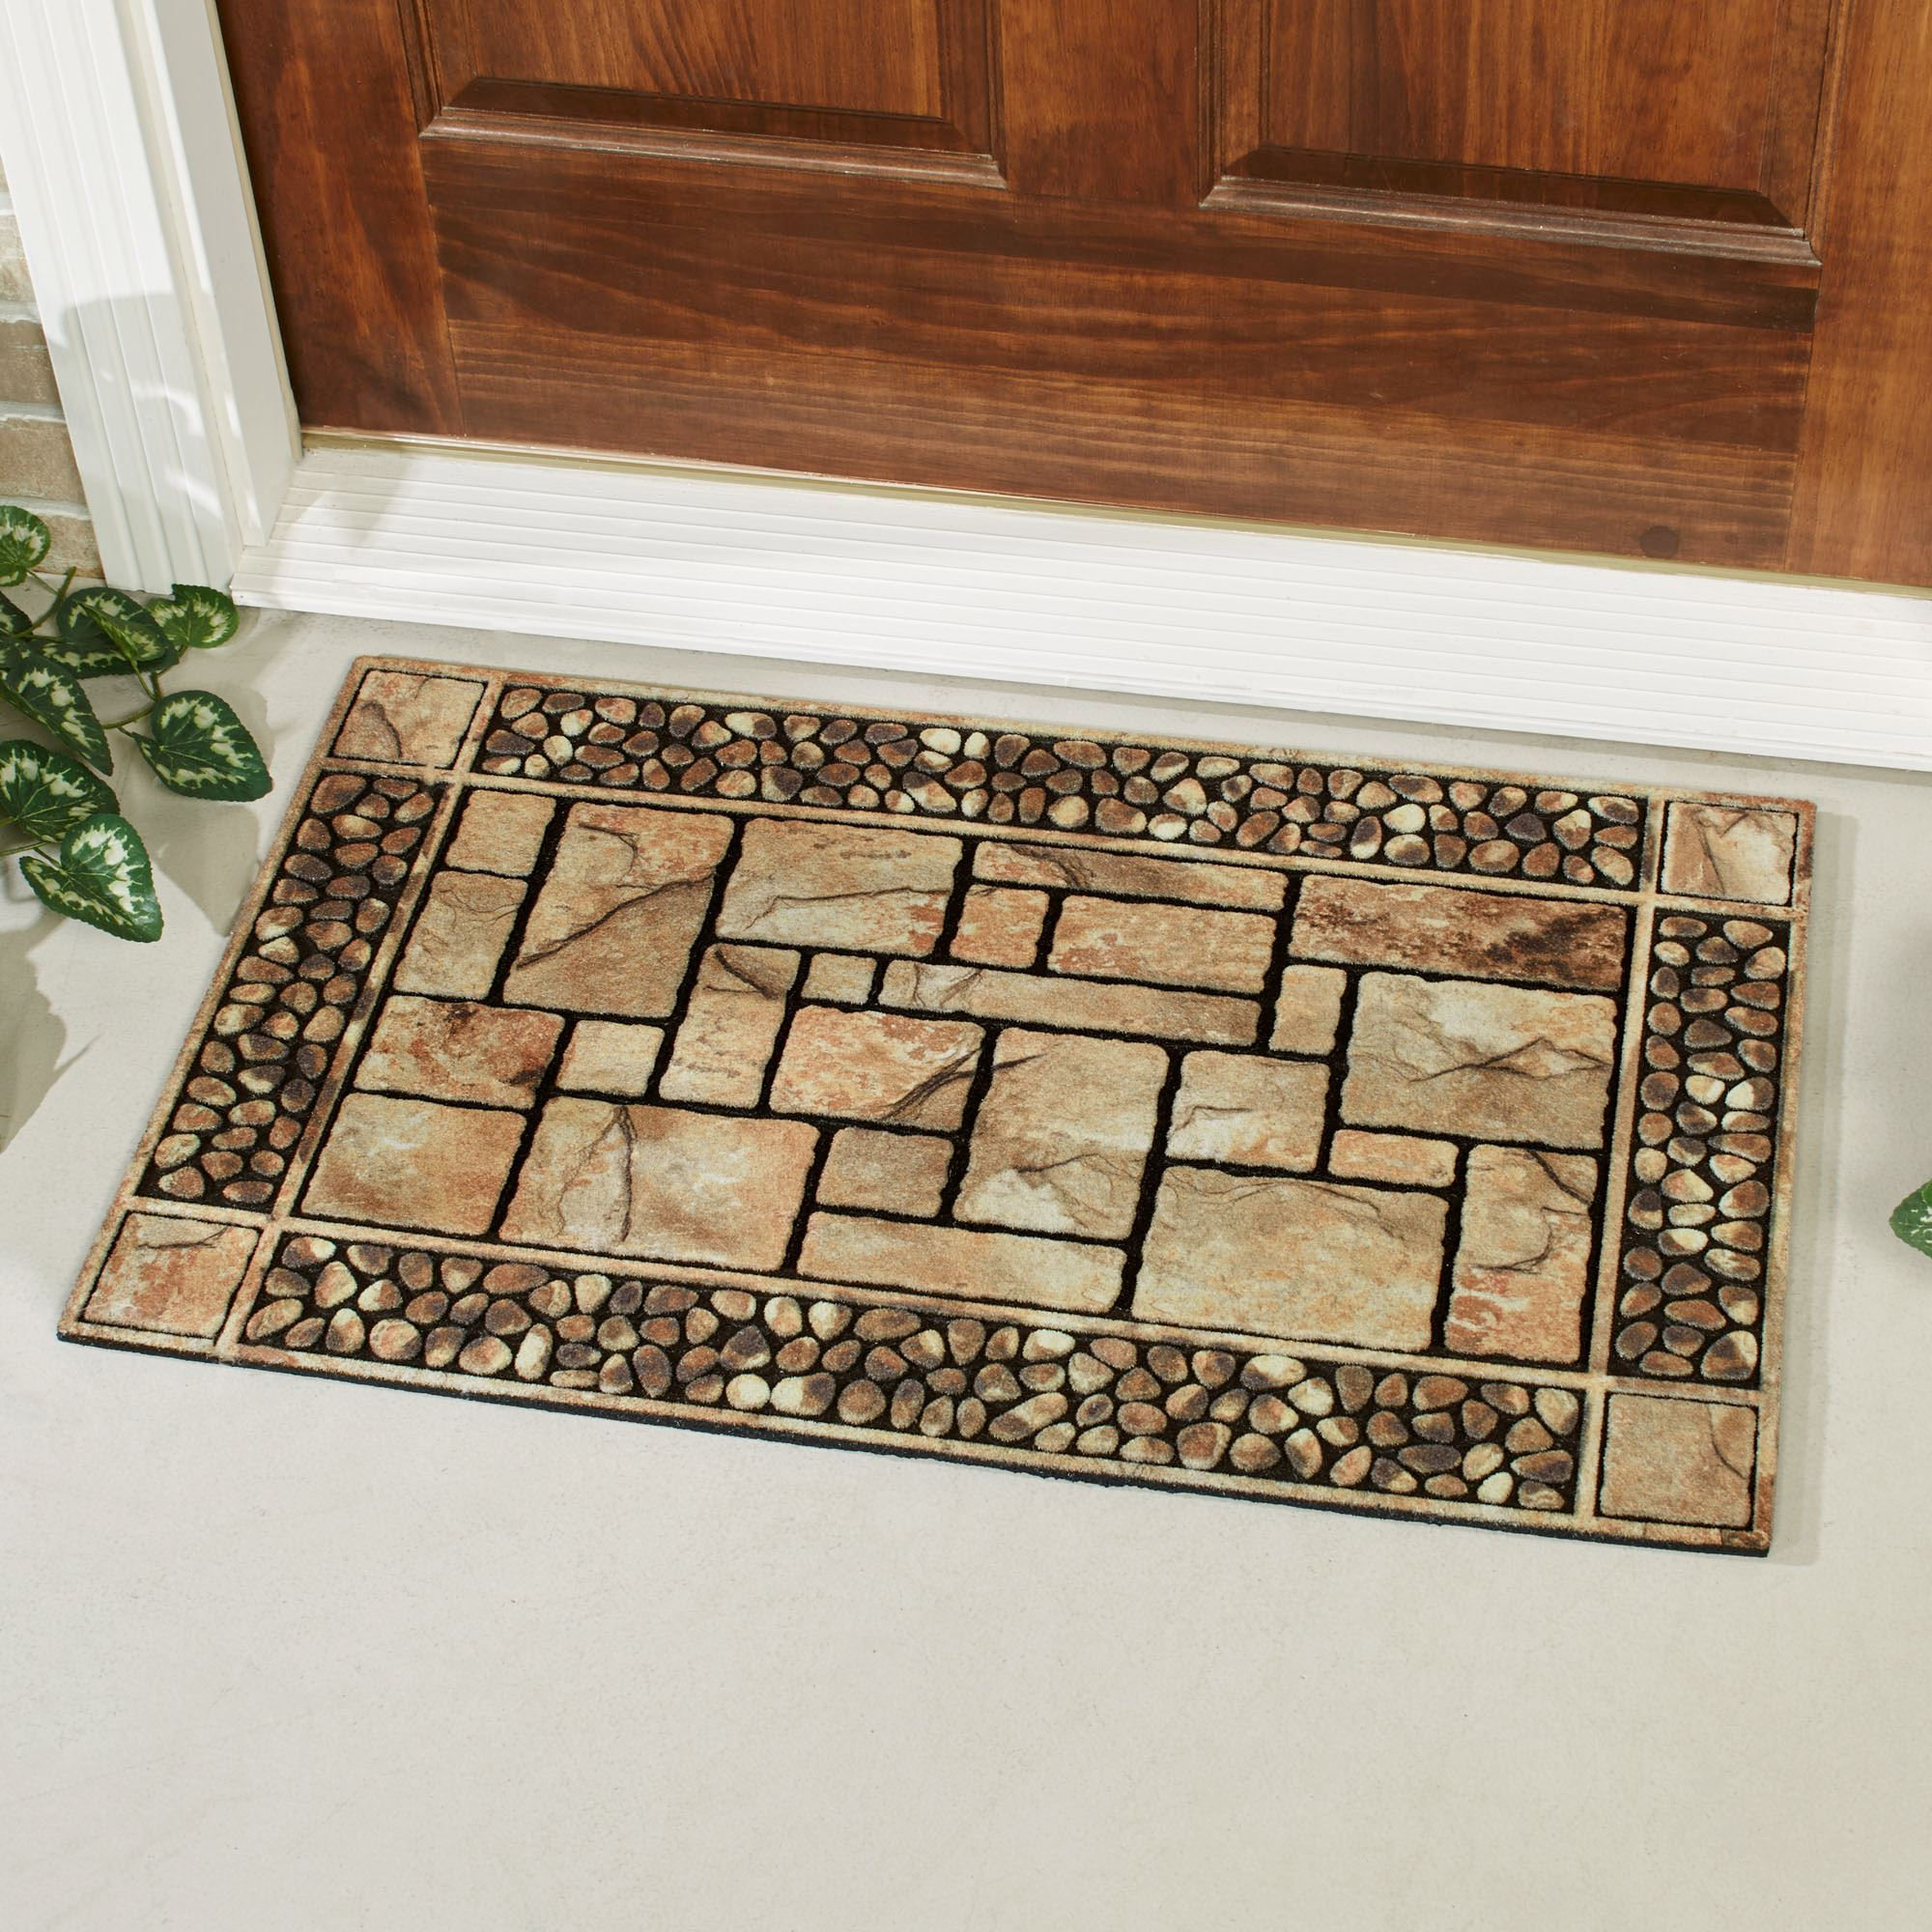 Patio Stone Recycled Rubber Doormat